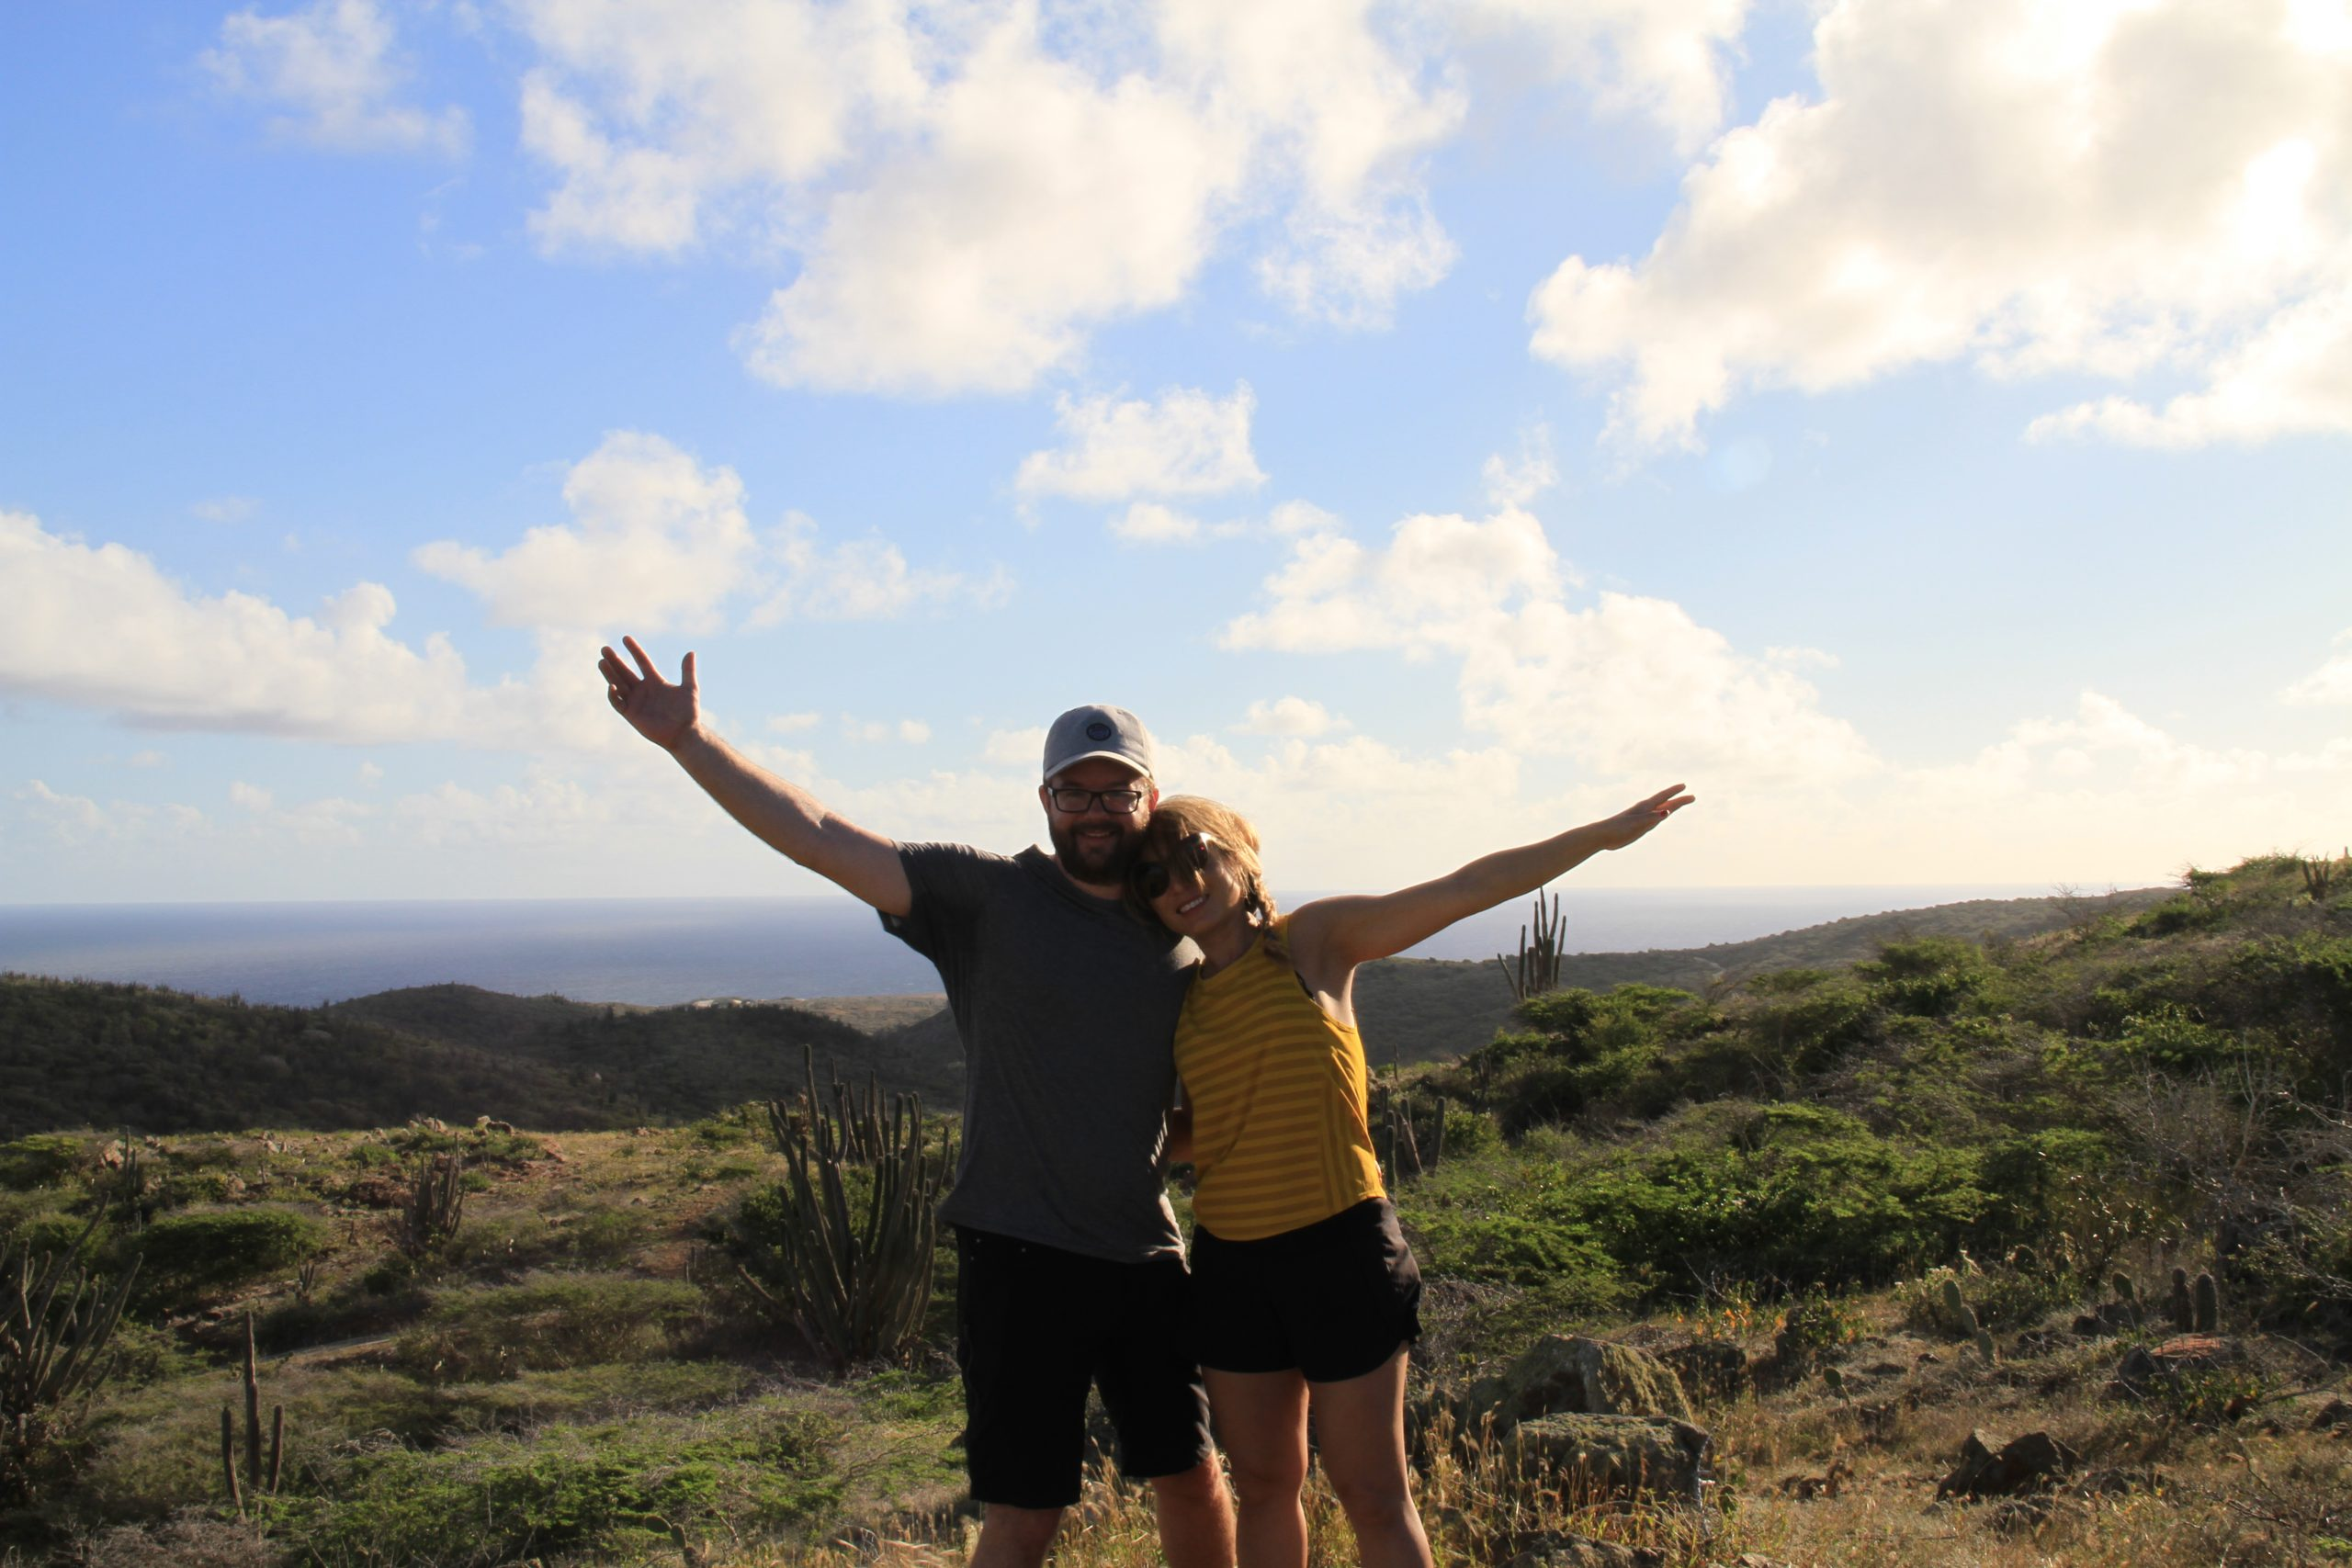 At the Top of Aruba